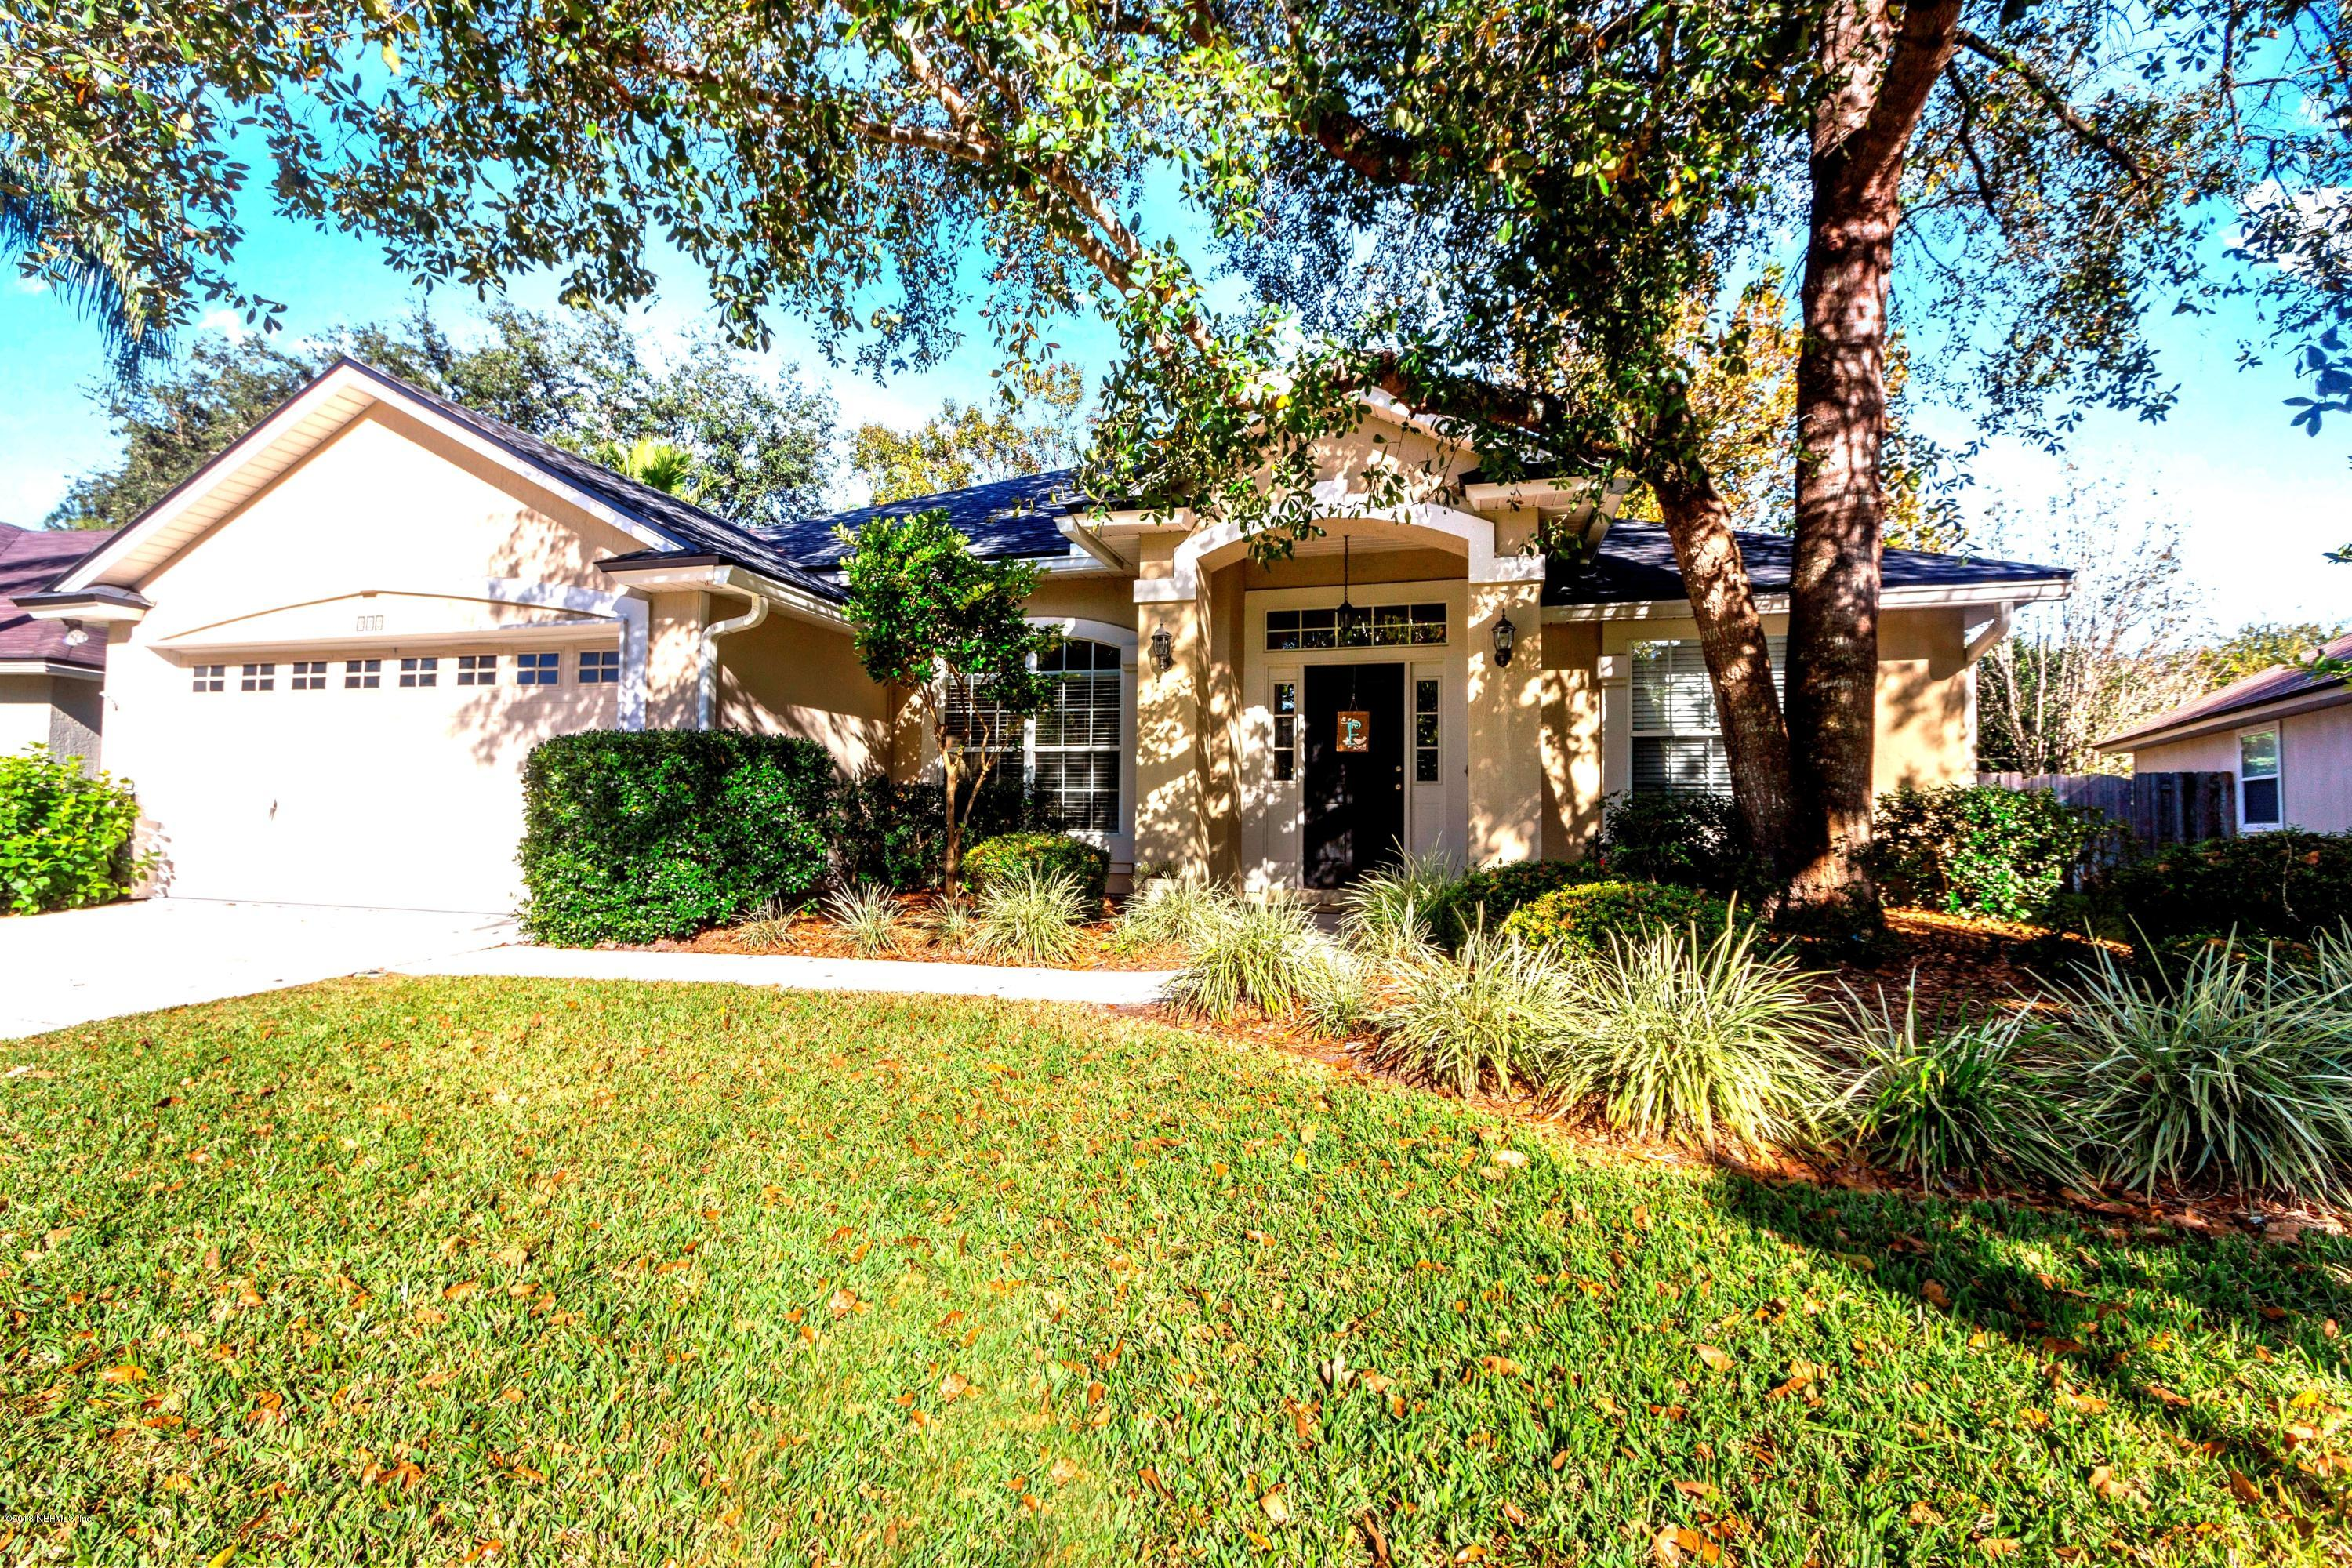 912 W DOTY BRANCH LN, Saint Johns in ST. JOHNS County, FL 32259 Home for Sale